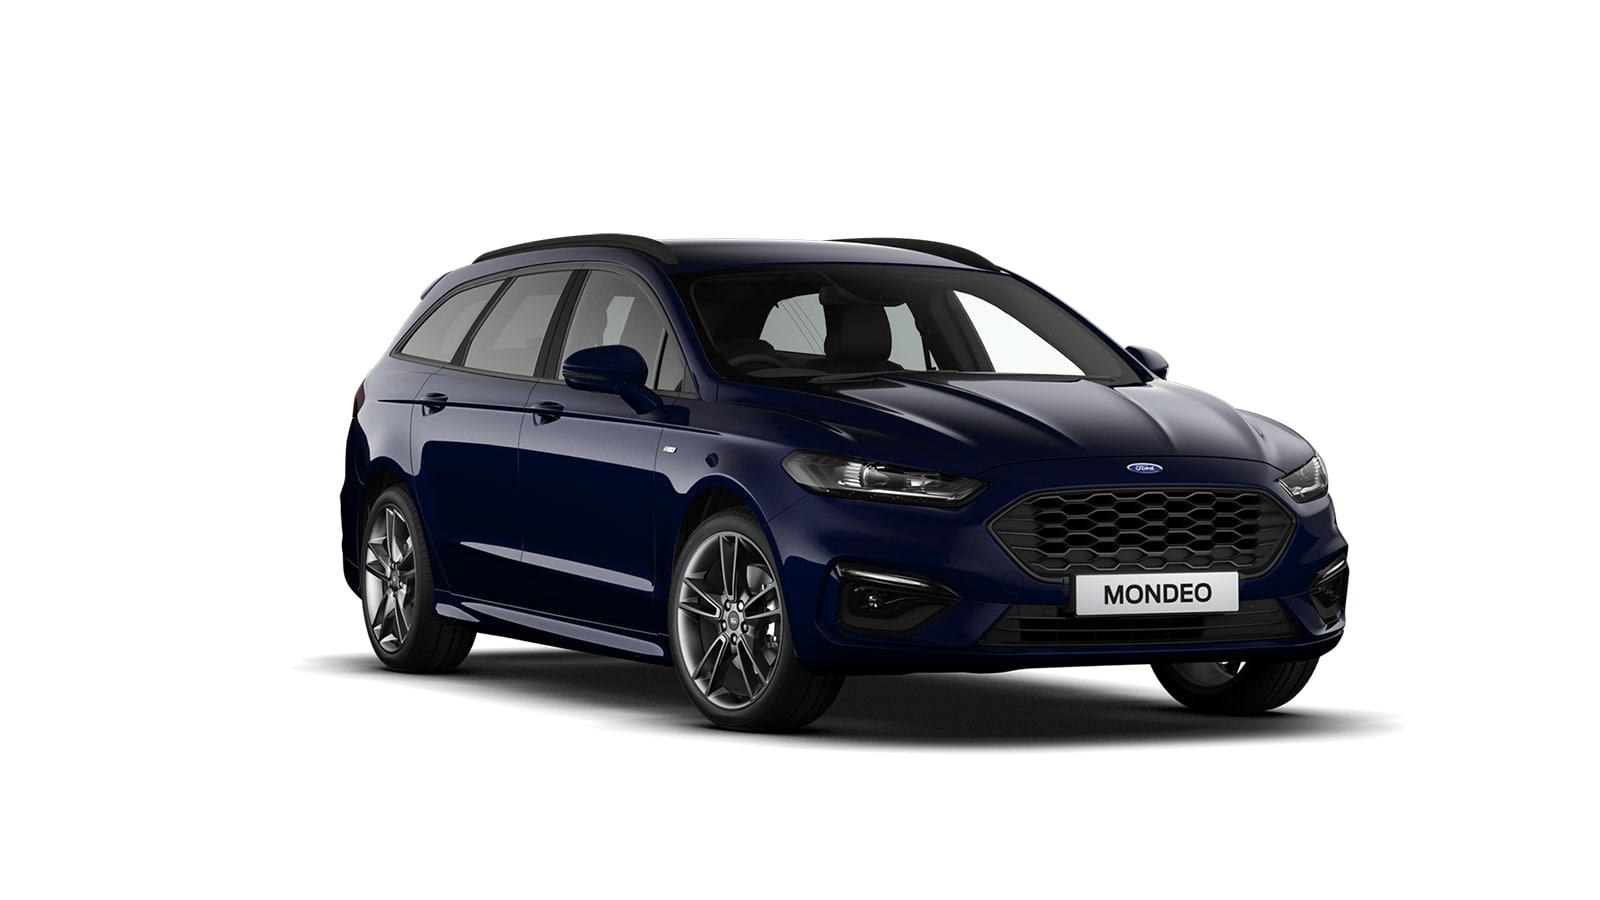 Ford Mondeo ST-Line Edition 1.5L EcoBoost 165PS at Browne & Day